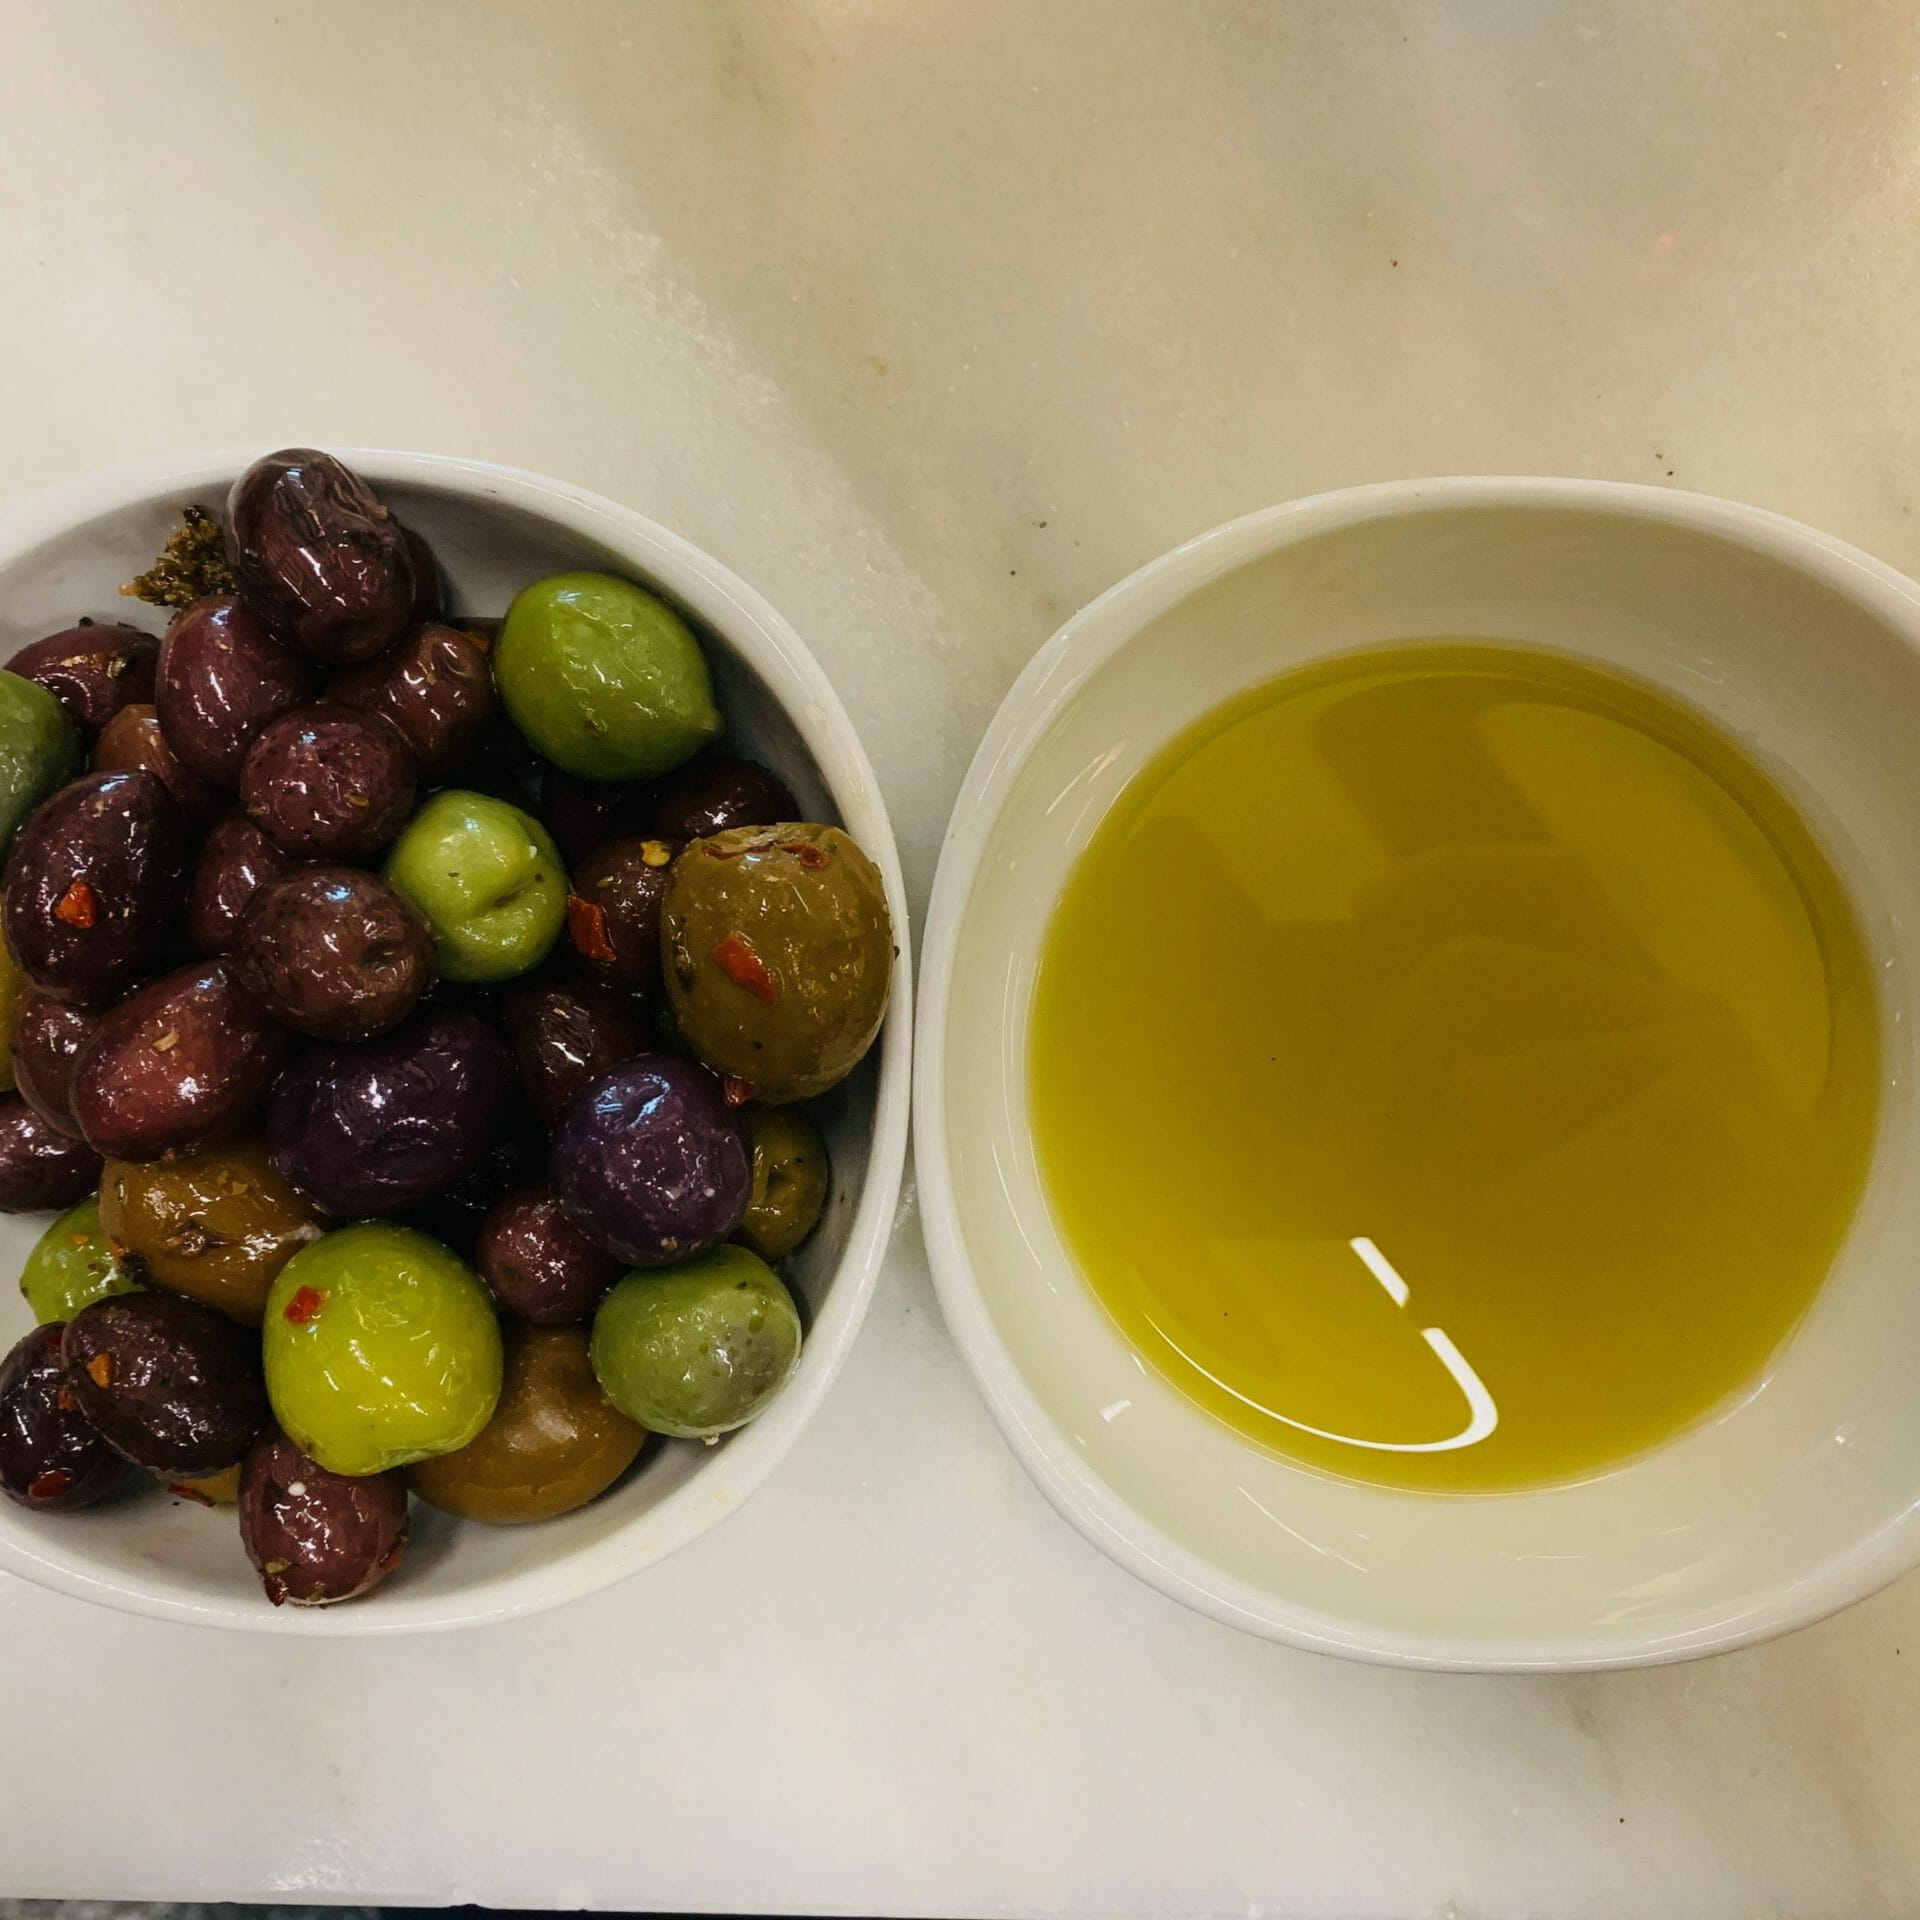 Olives with extra virgin olive oil (Ecco)